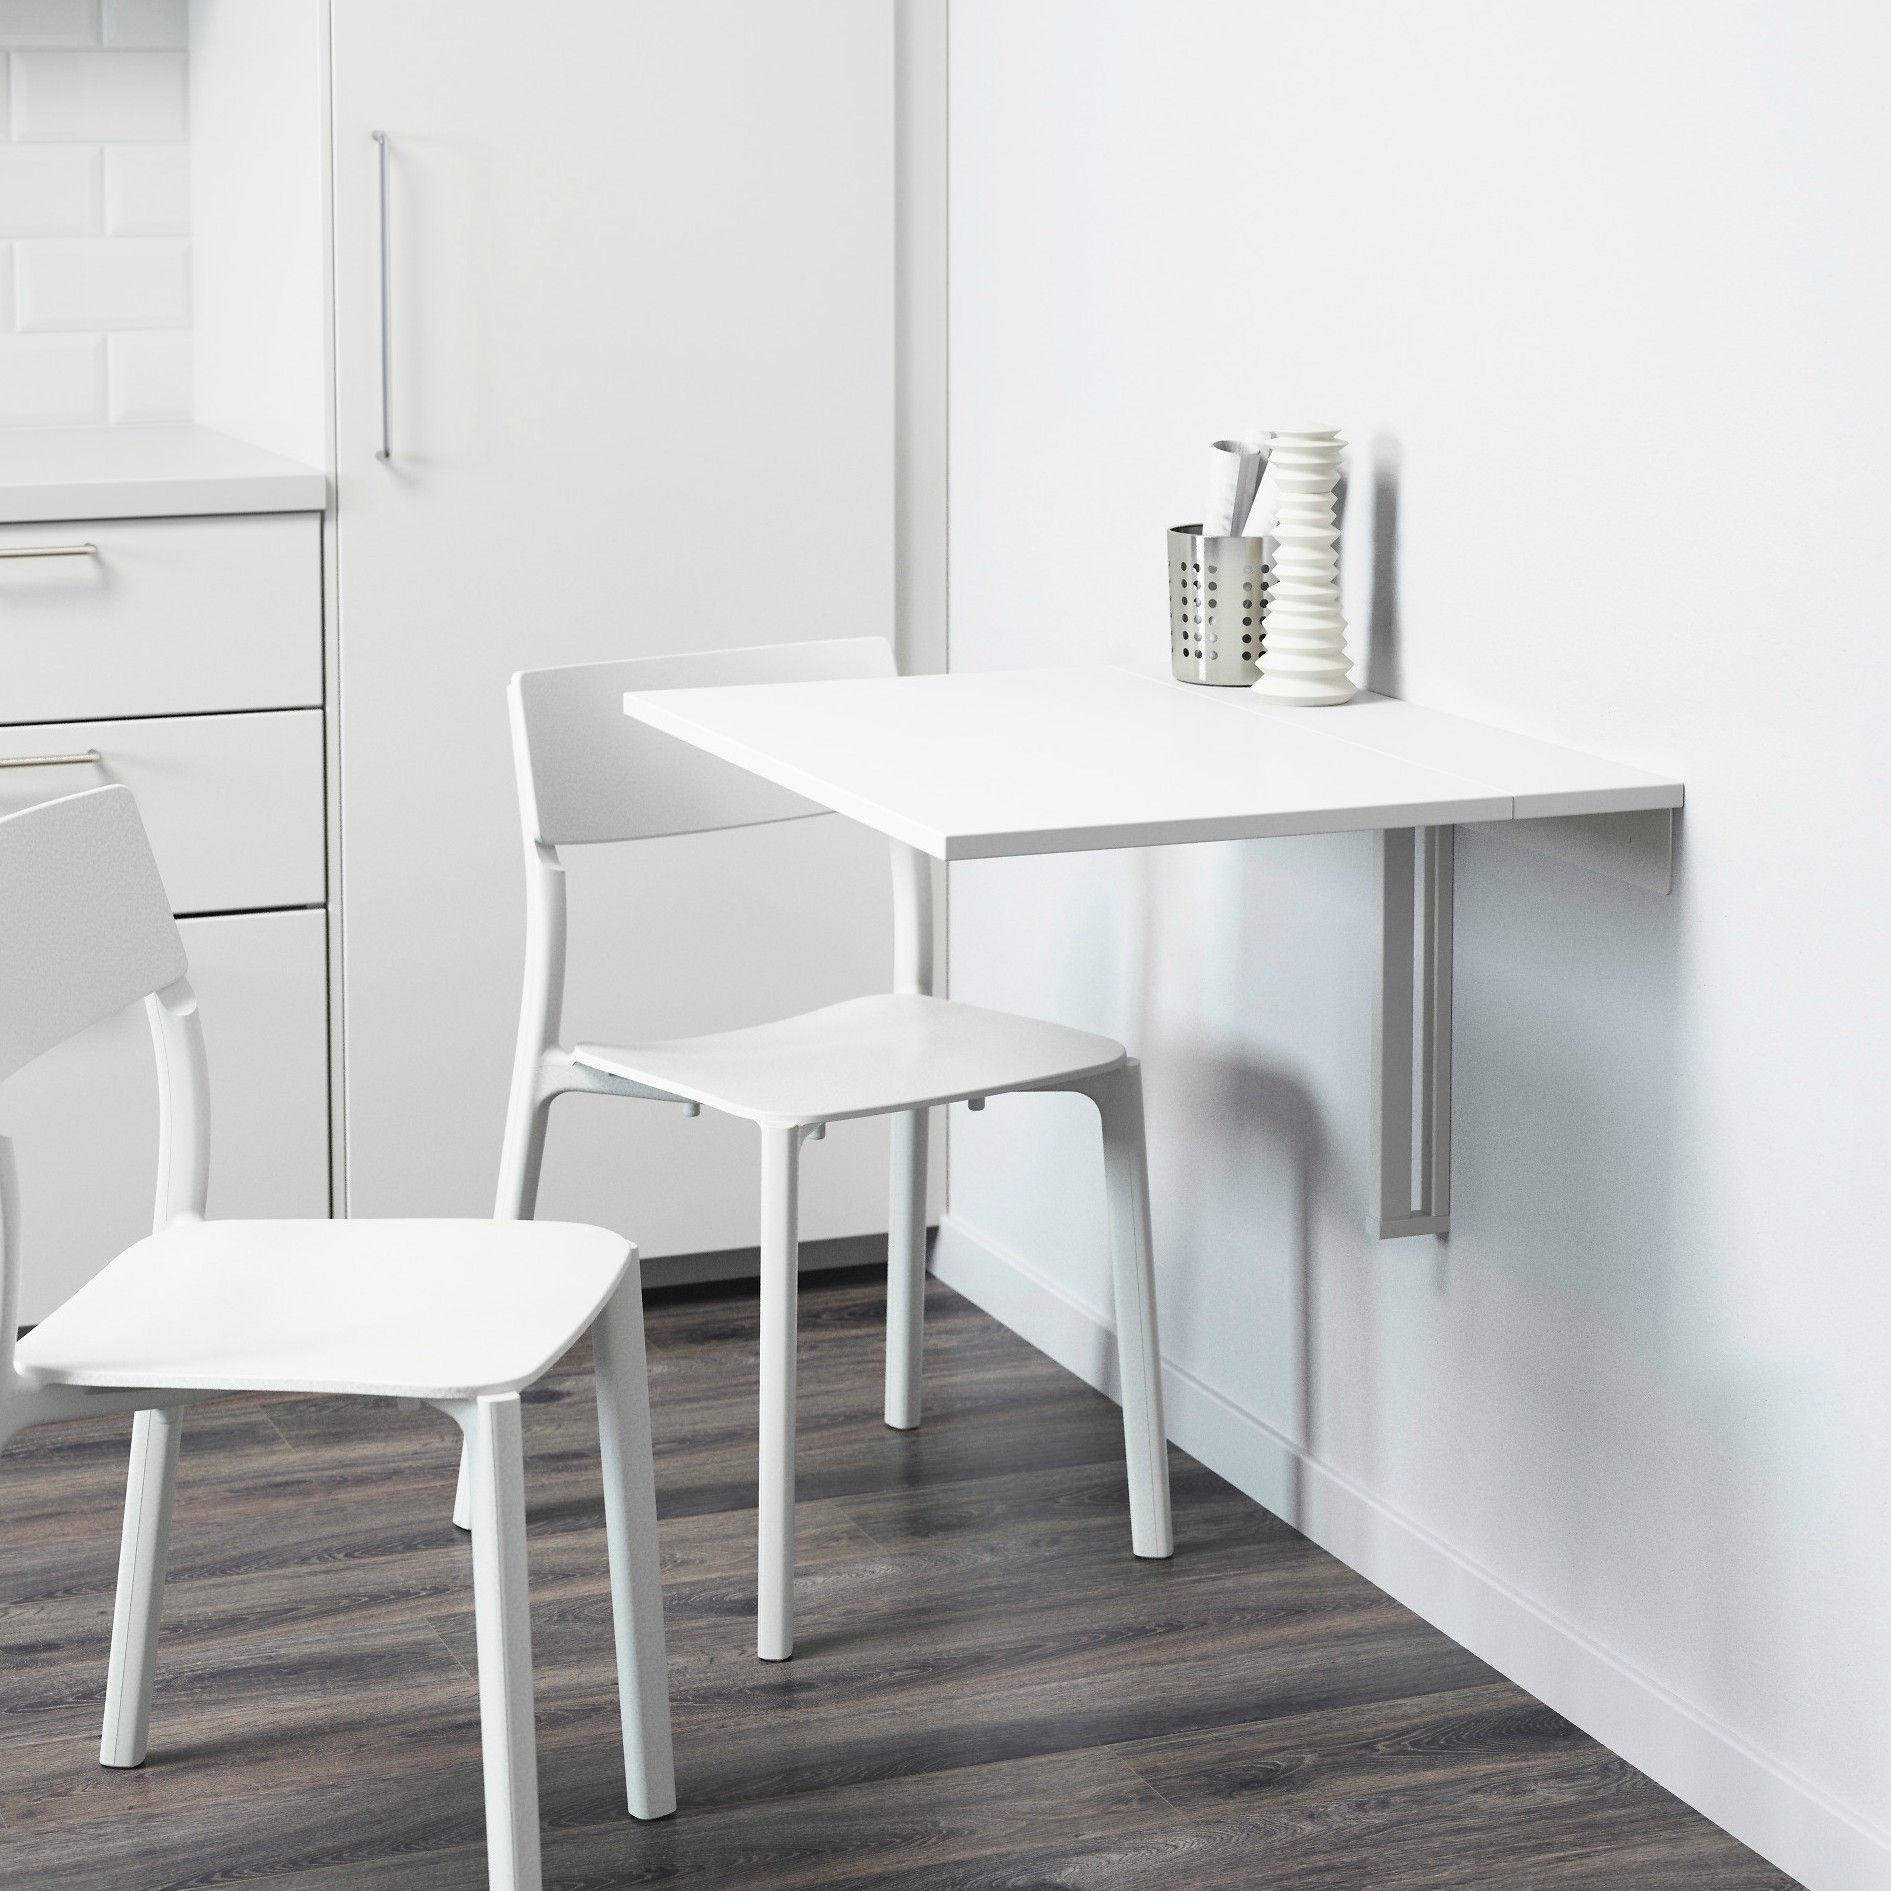 The Best IKEA Products for Small Spaces | Small spaces, Spaces and ...